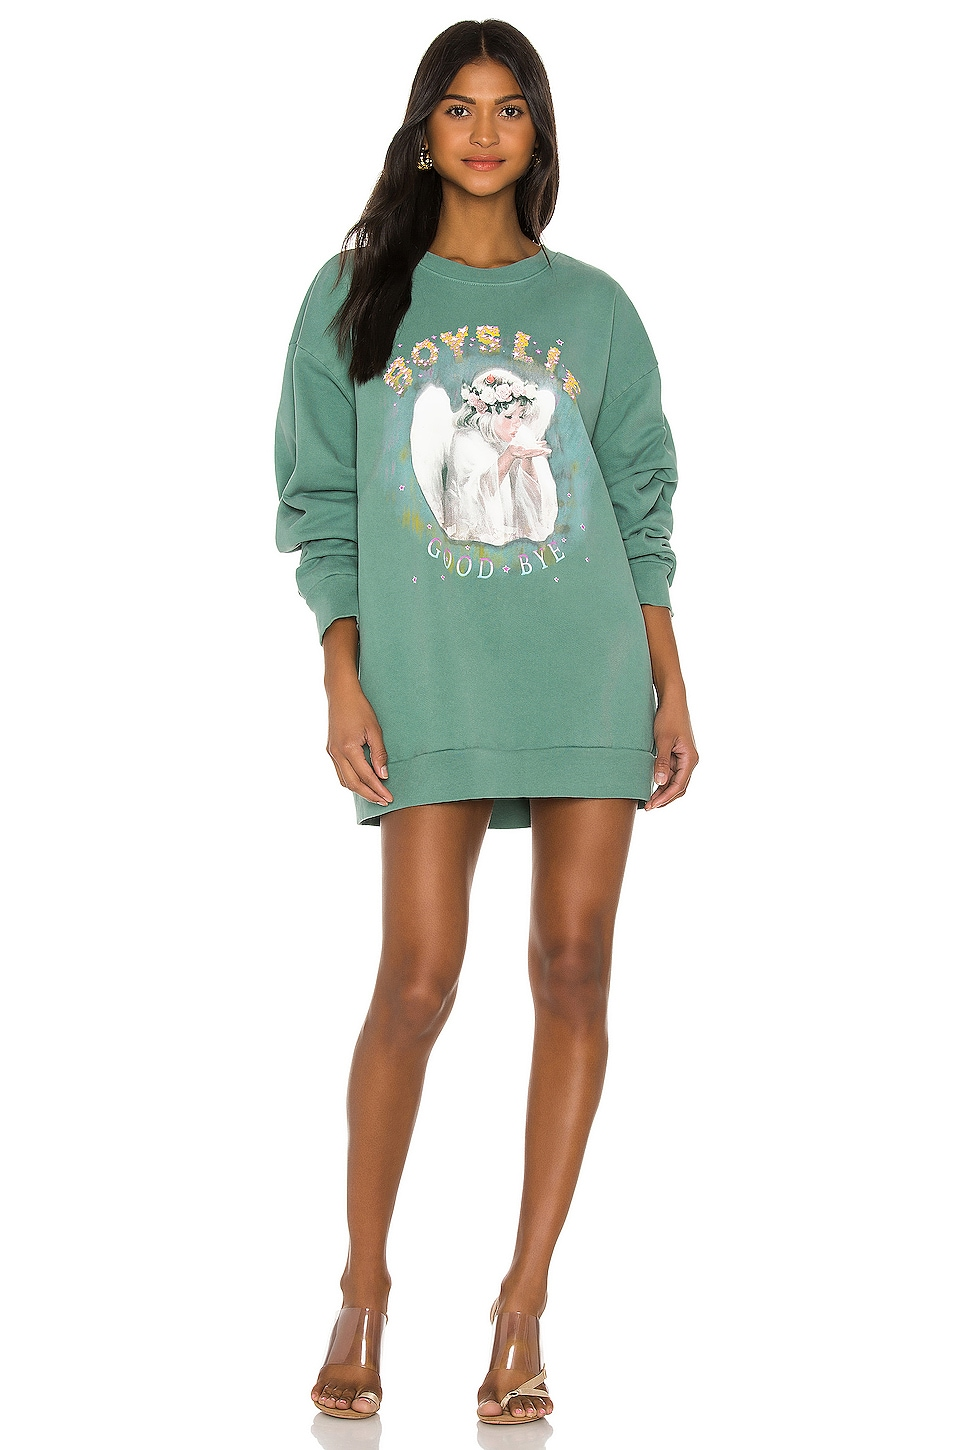 Boys Lie, Good Bye Crewneck             Boys Lie                                                                                                       CA$ 156.40 2